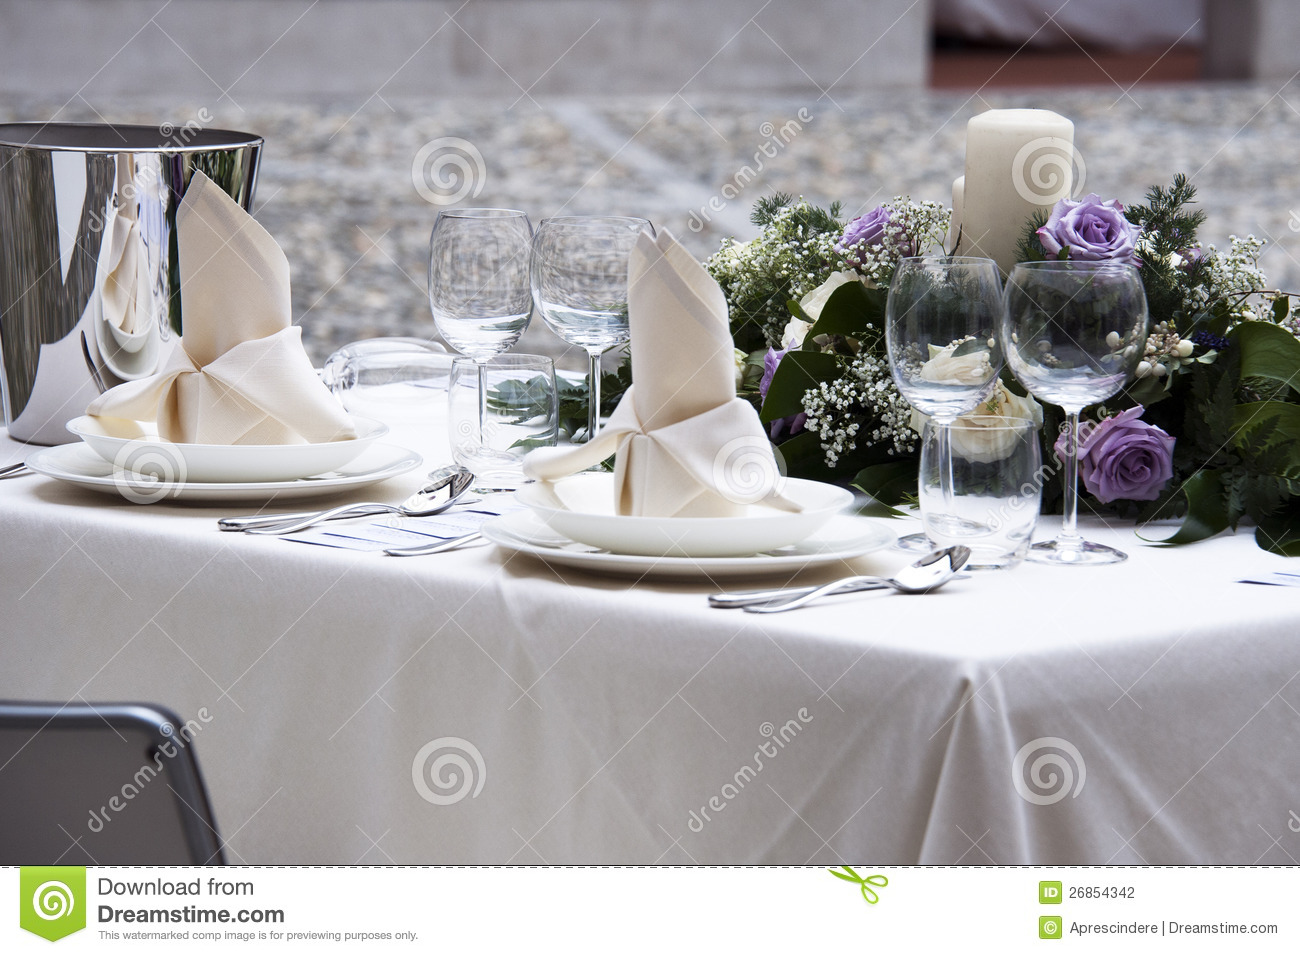 Romantic table setting & Romantic table setting stock photo. Image of glass diner - 26854342